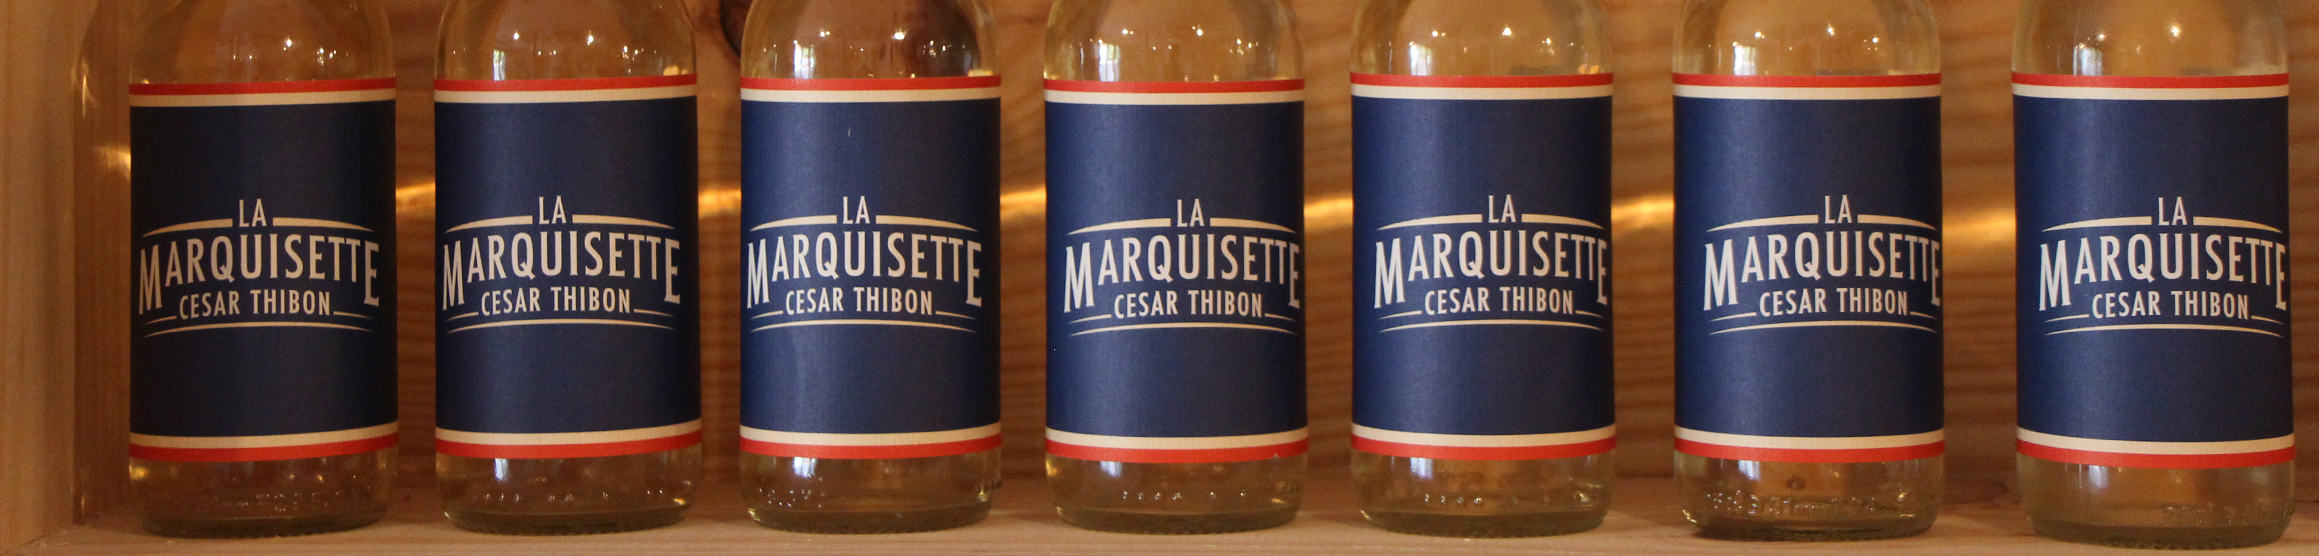 marquisette_25cl